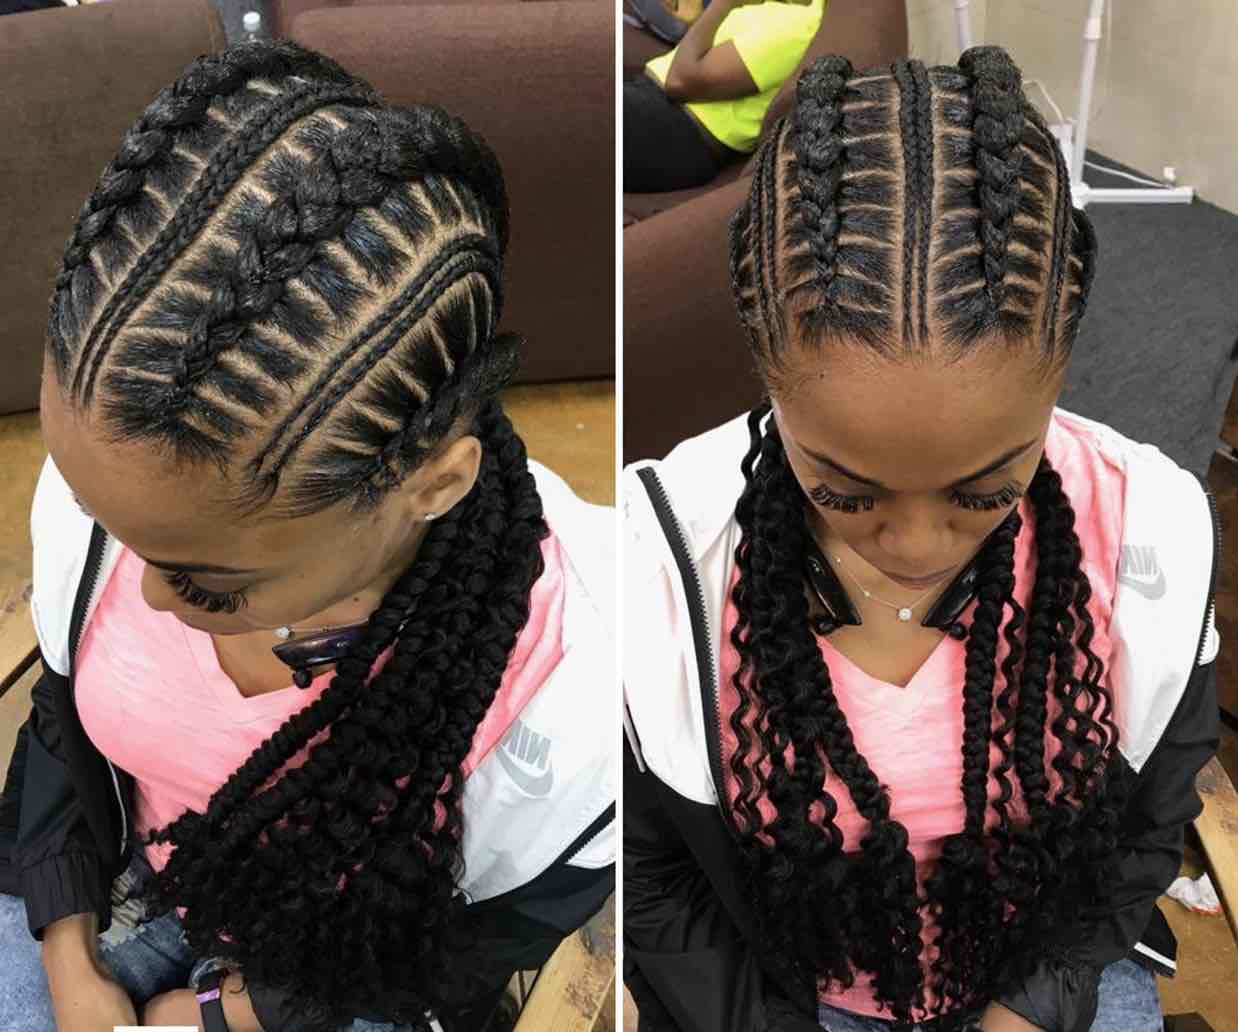 salon de coiffure afro tresse tresses box braids crochet braids vanilles tissages paris 75 77 78 91 92 93 94 95 MUJRCNSJ